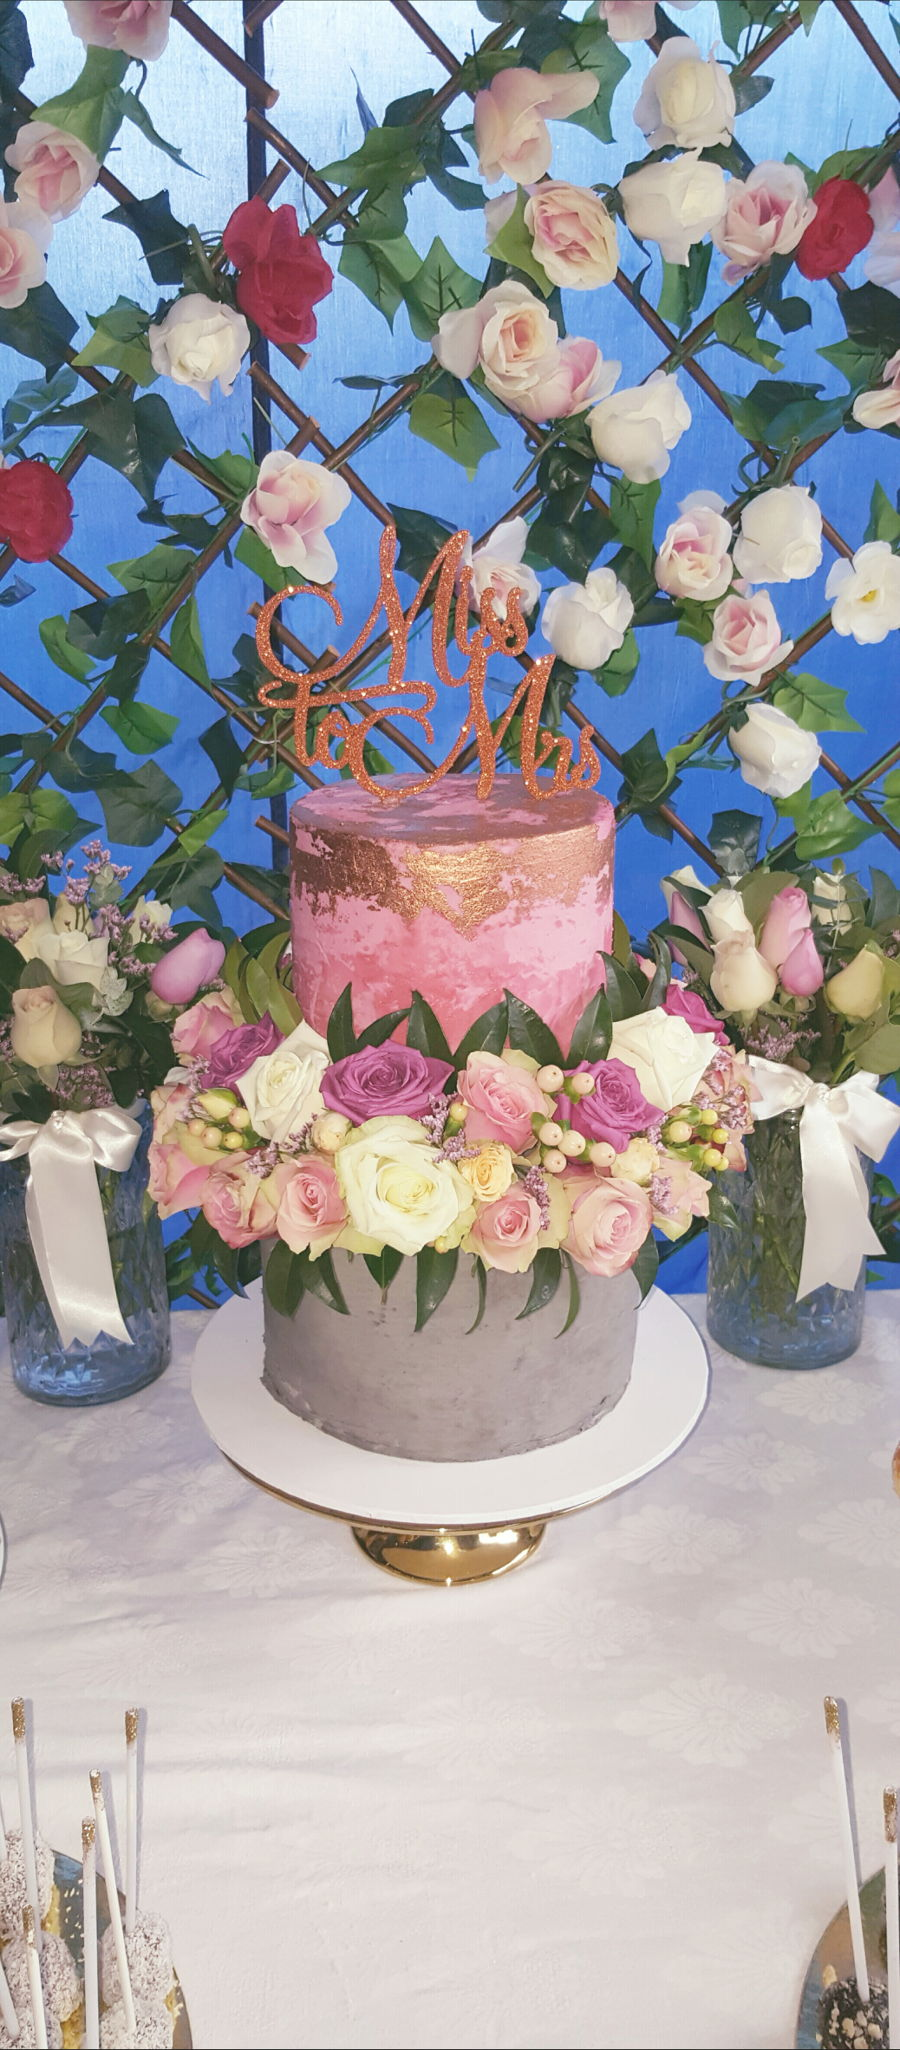 From Miss To Mrs! - CakeCentral.com